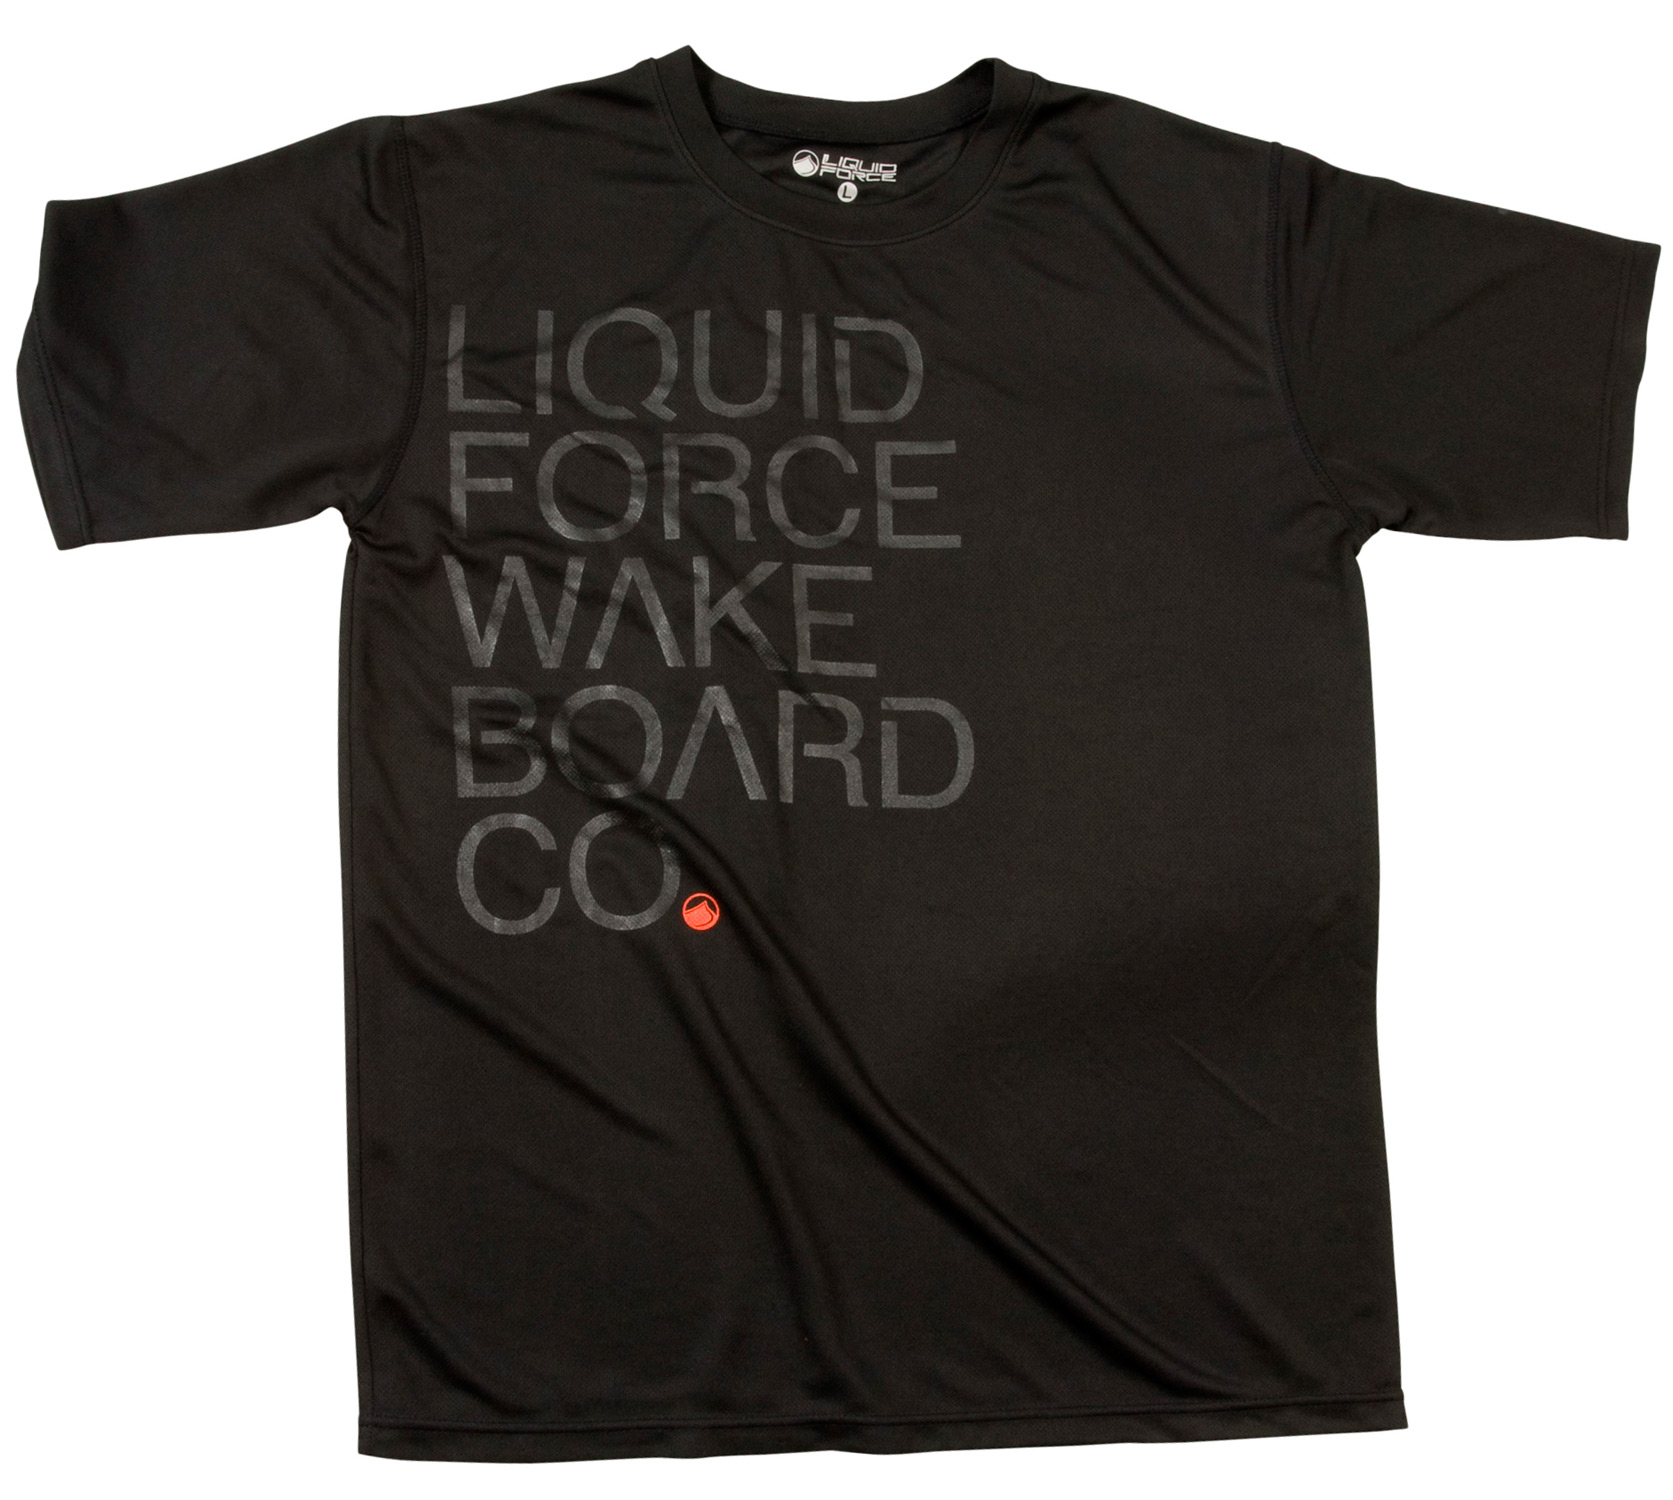 Liquid Force Dark Riding Shirt Black - $31.95